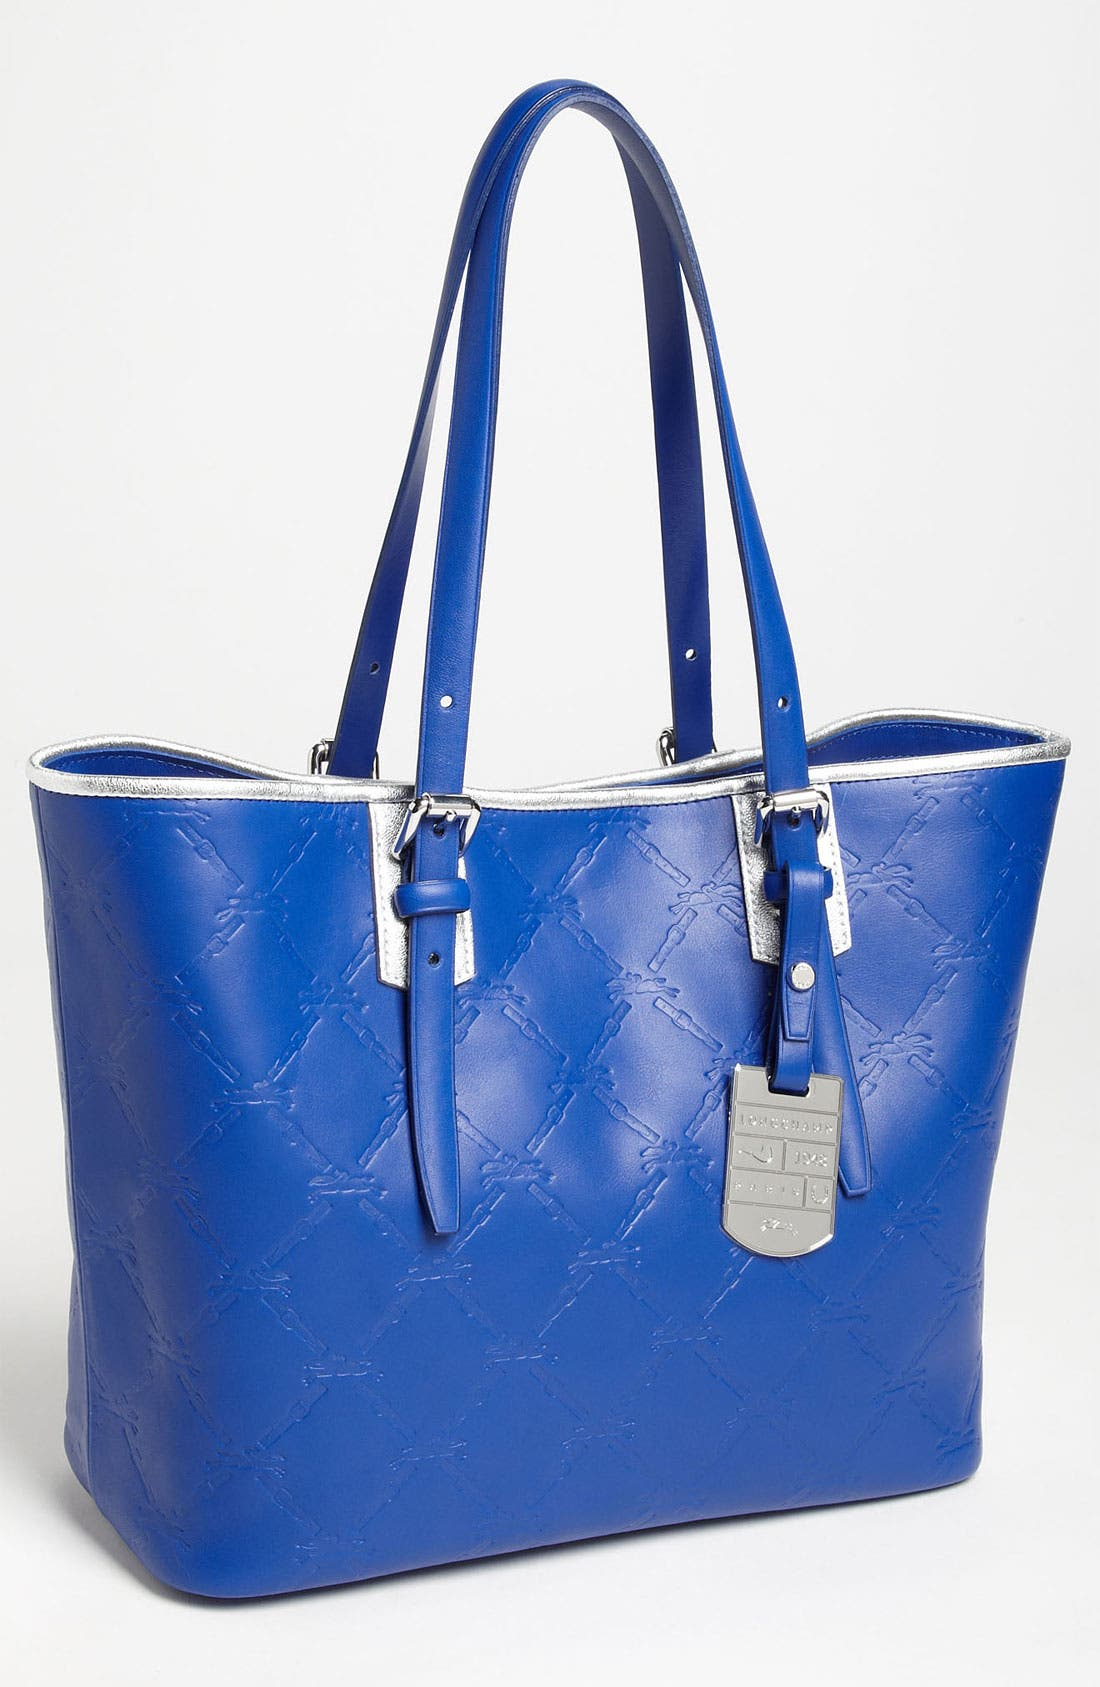 Alternate Image 1 Selected - Longchamp 'LM Cuir - Small' Shoulder Tote